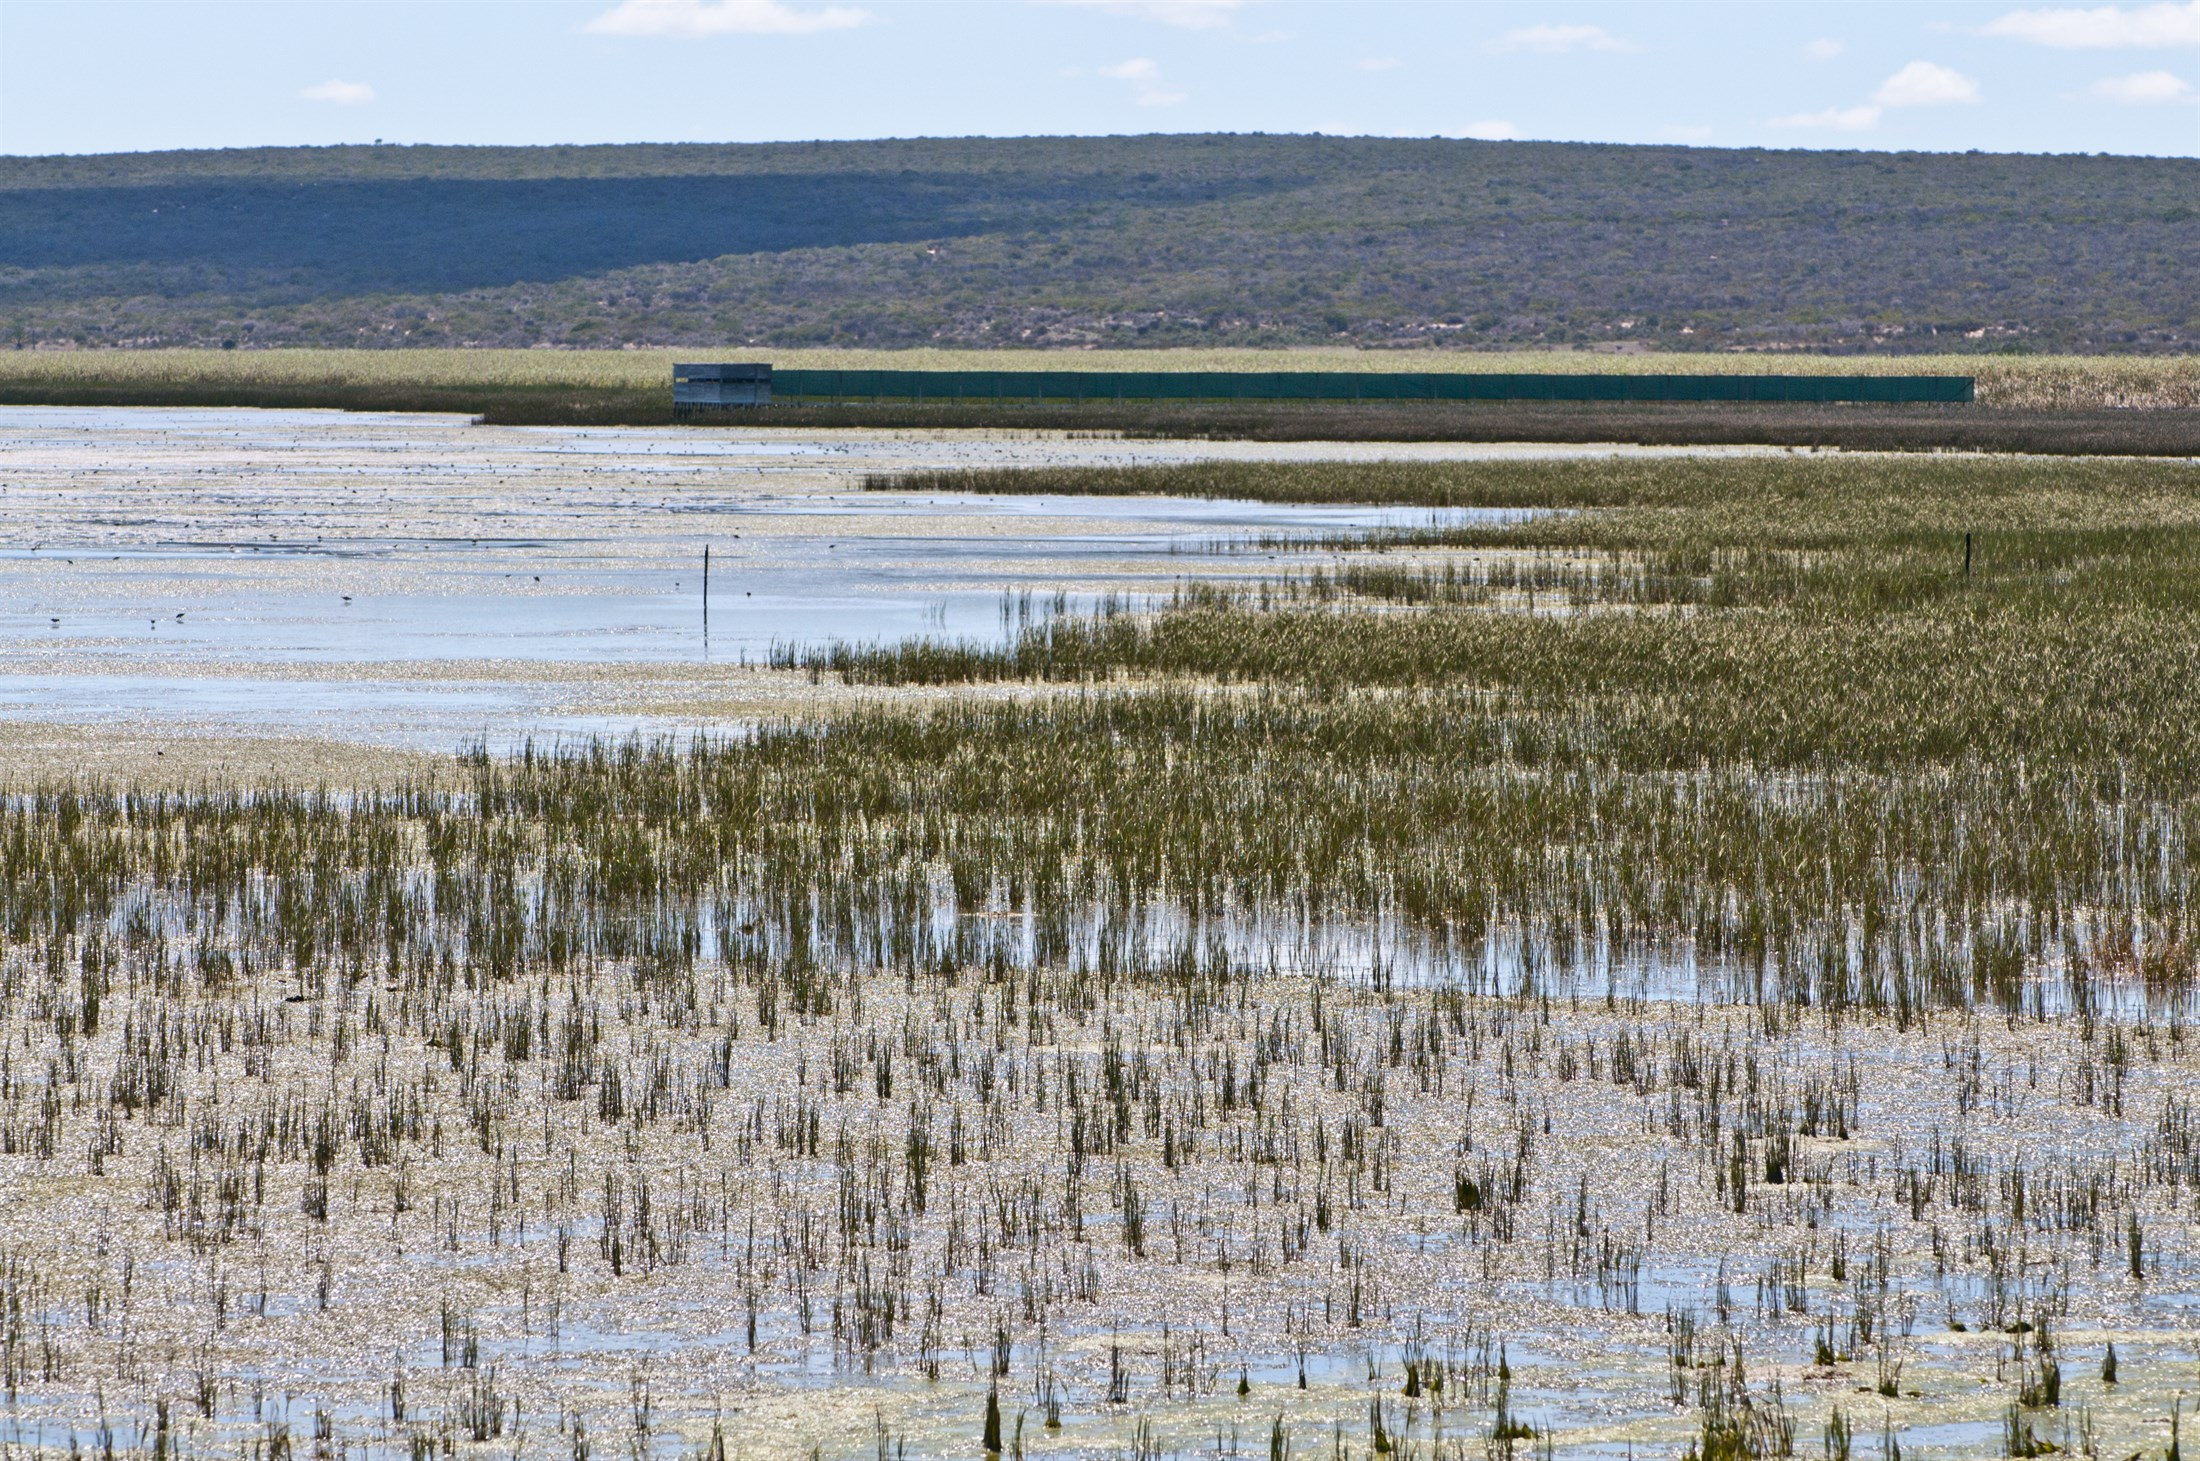 saltmarshes-tidal-flats-and-bird-observation-hide-west-coast-national-park-south-africa_54d1-2200x1461px